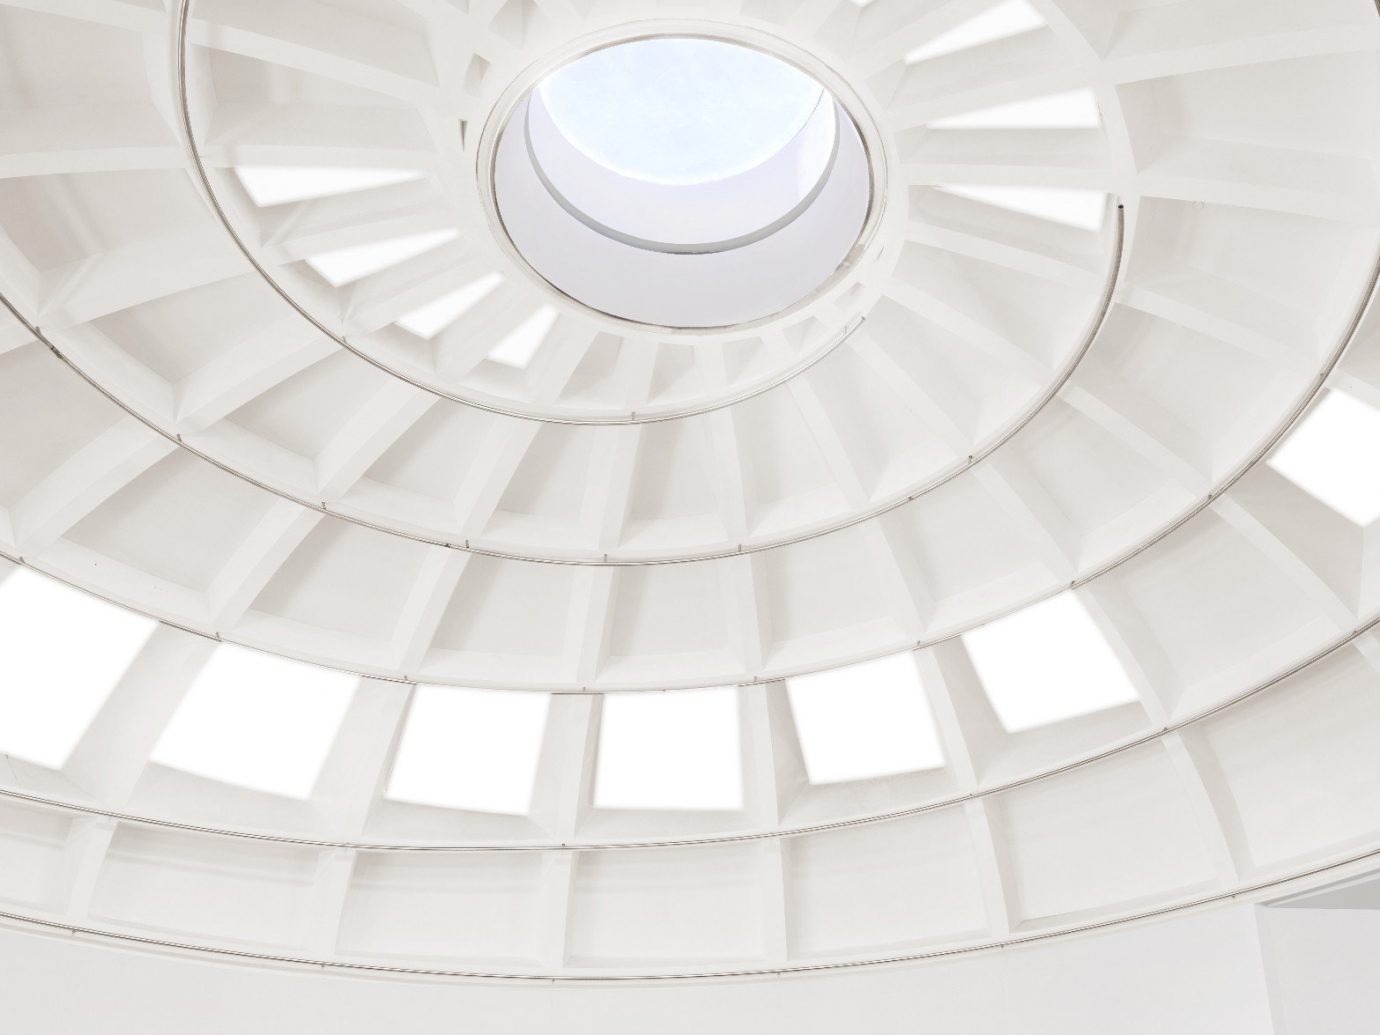 Trip Ideas ceiling white building structure dome Architecture daylighting spiral floor lighting circle symmetry Design stadium